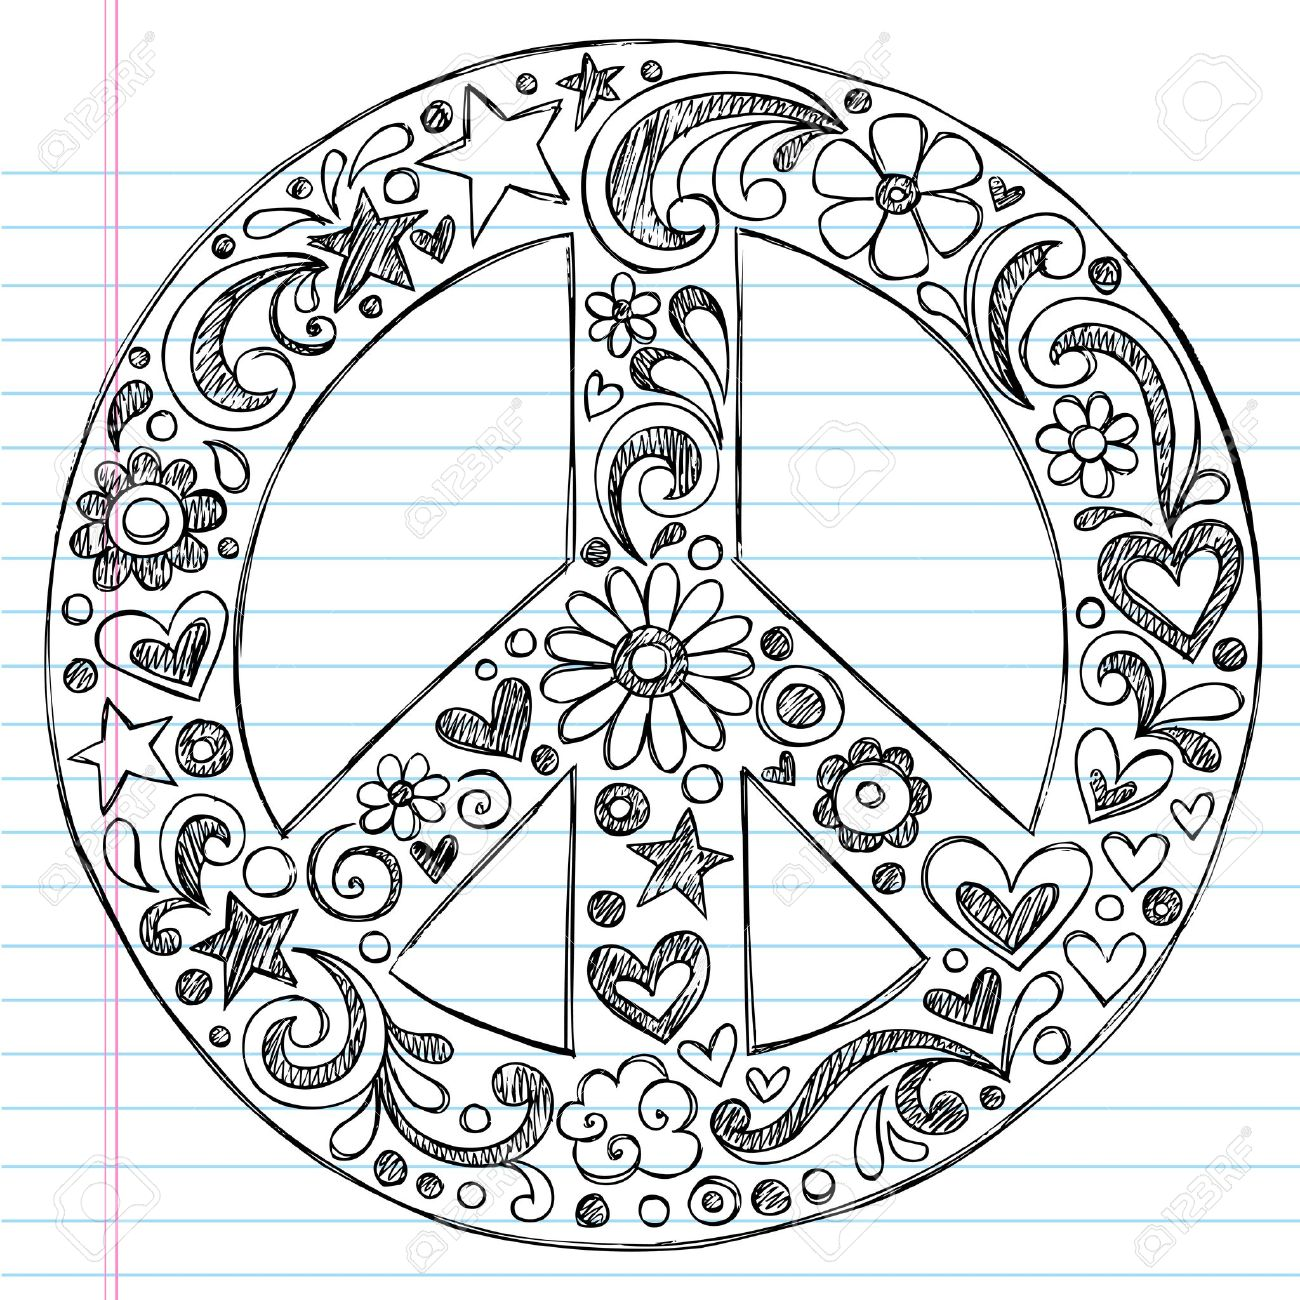 Hand Drawn Sketchy Peace Sign Doodle With Flowers Hearts And Stars On Lined Notebook Paper Backgroun